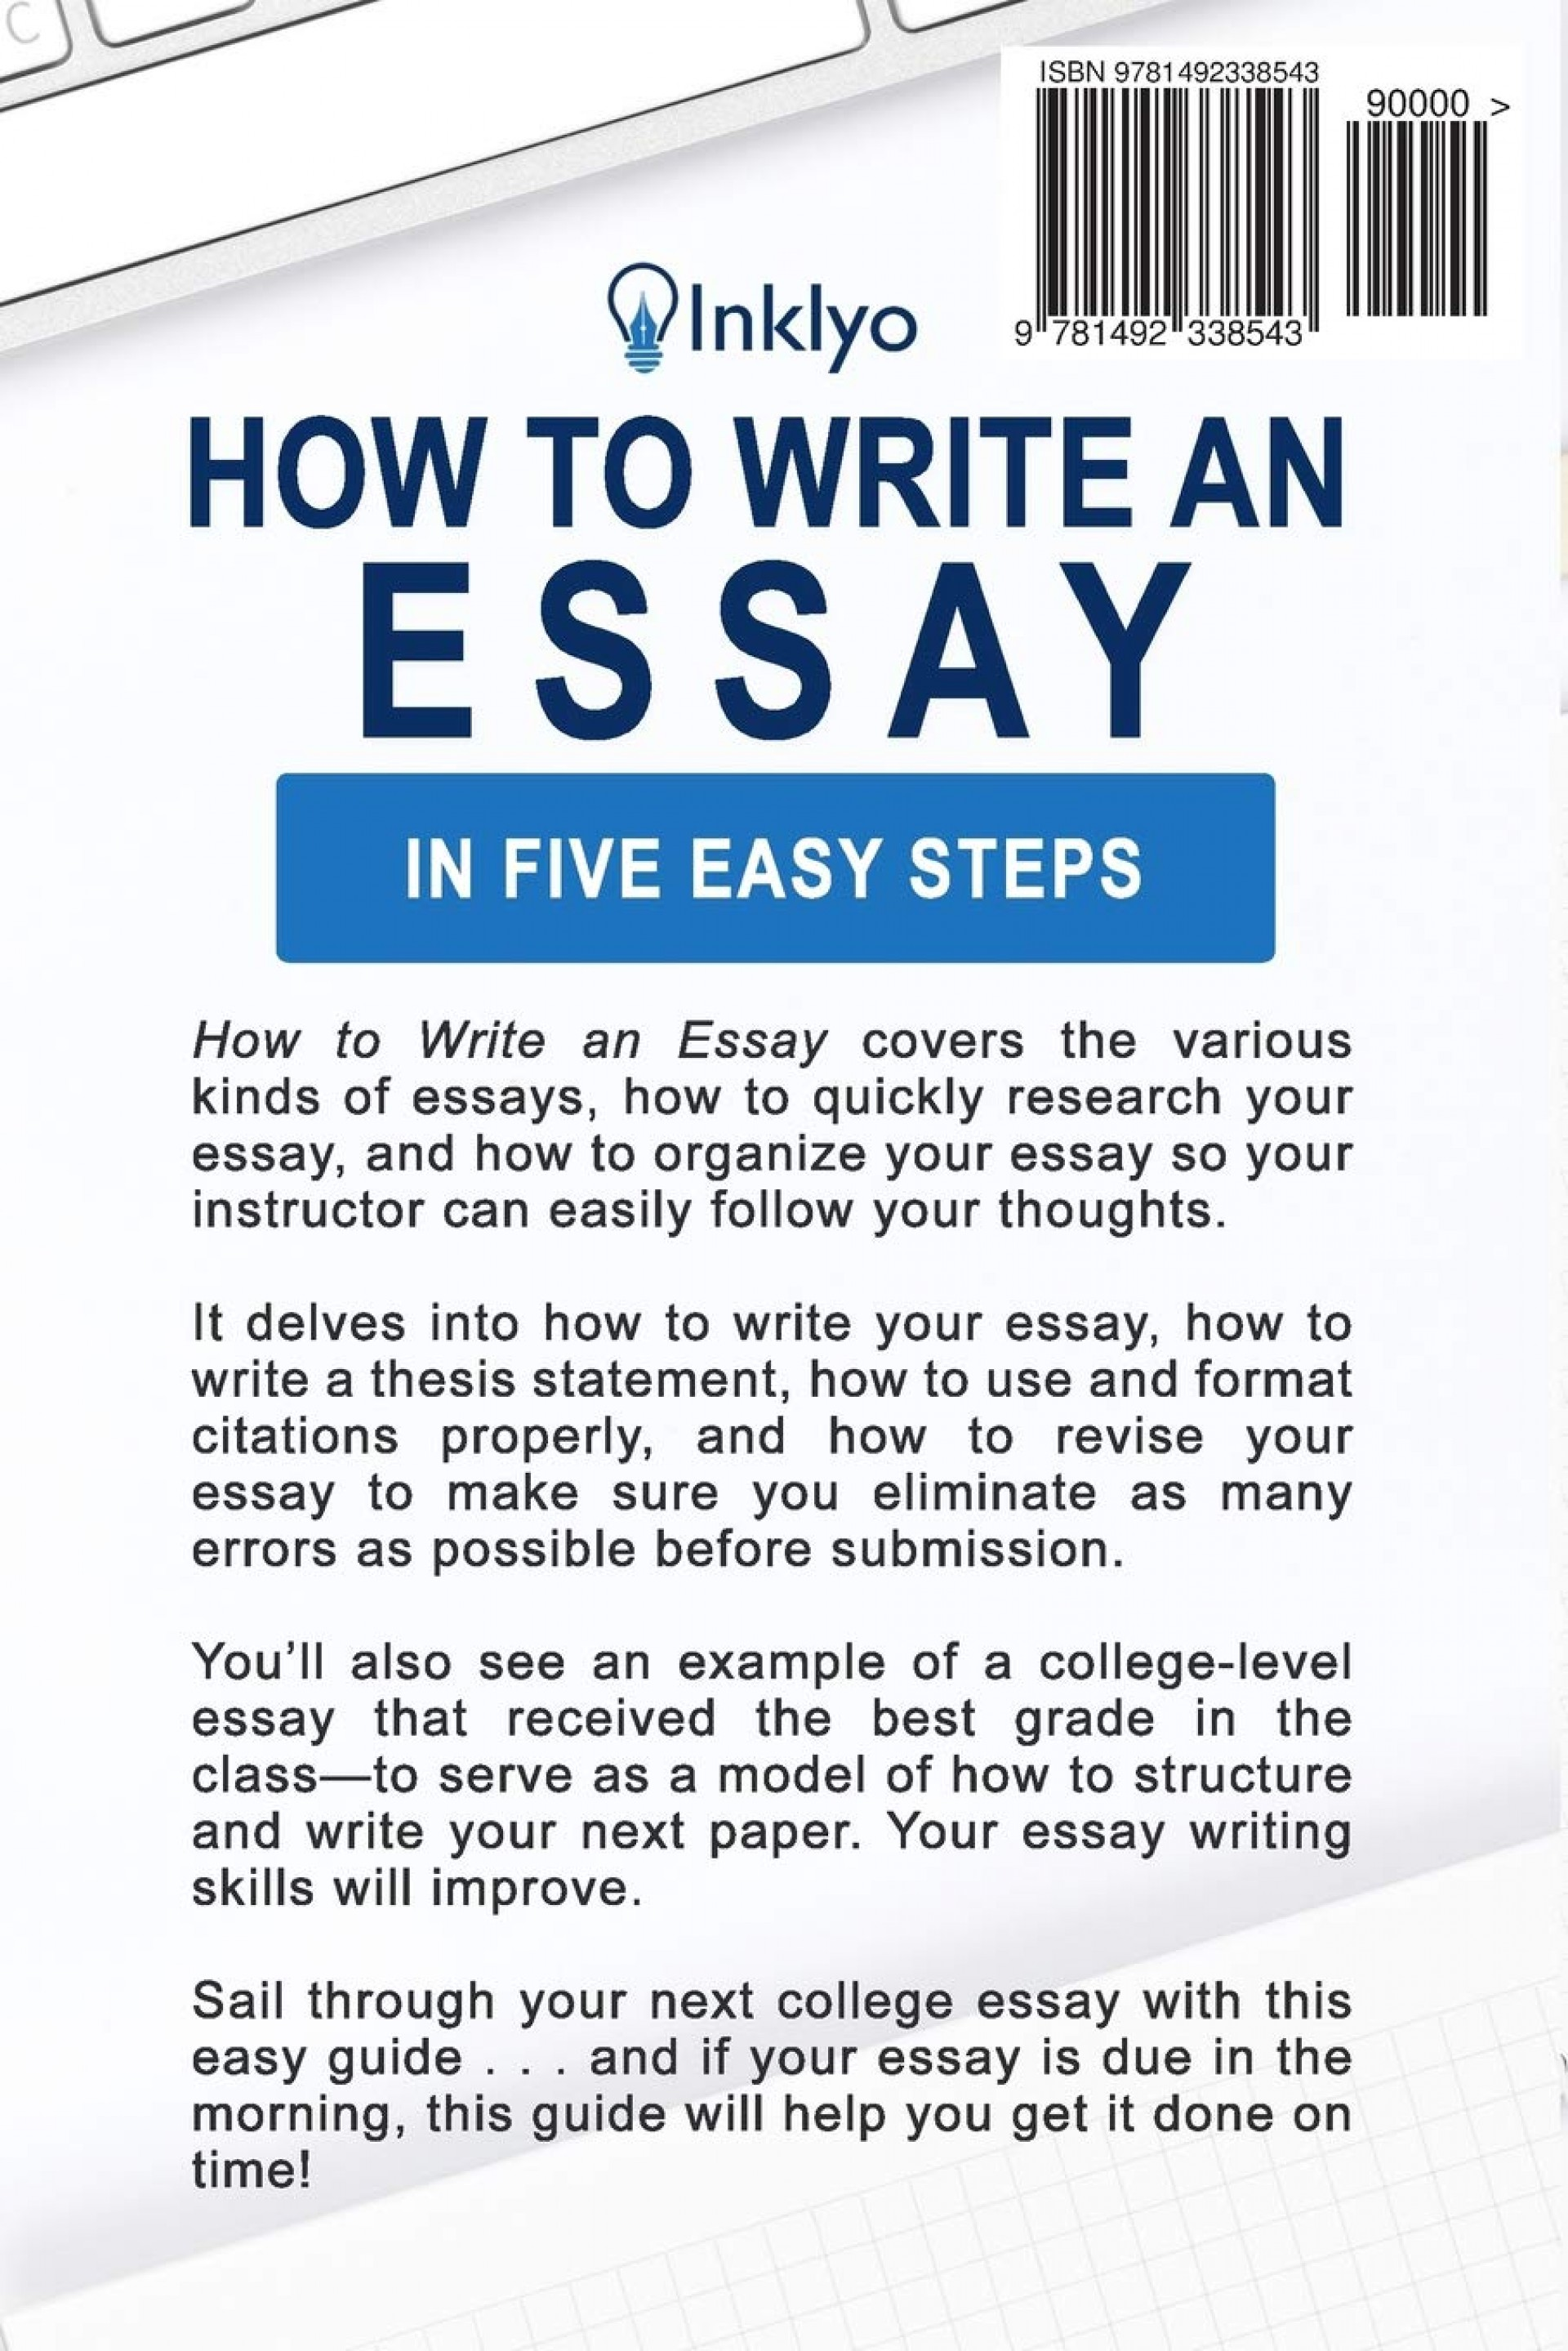 003 Essay Example 71v7ckw5pll How Do You Write Unbelievable An To Conclusion High School Informative In Third Person Argumentative Introduction 1920